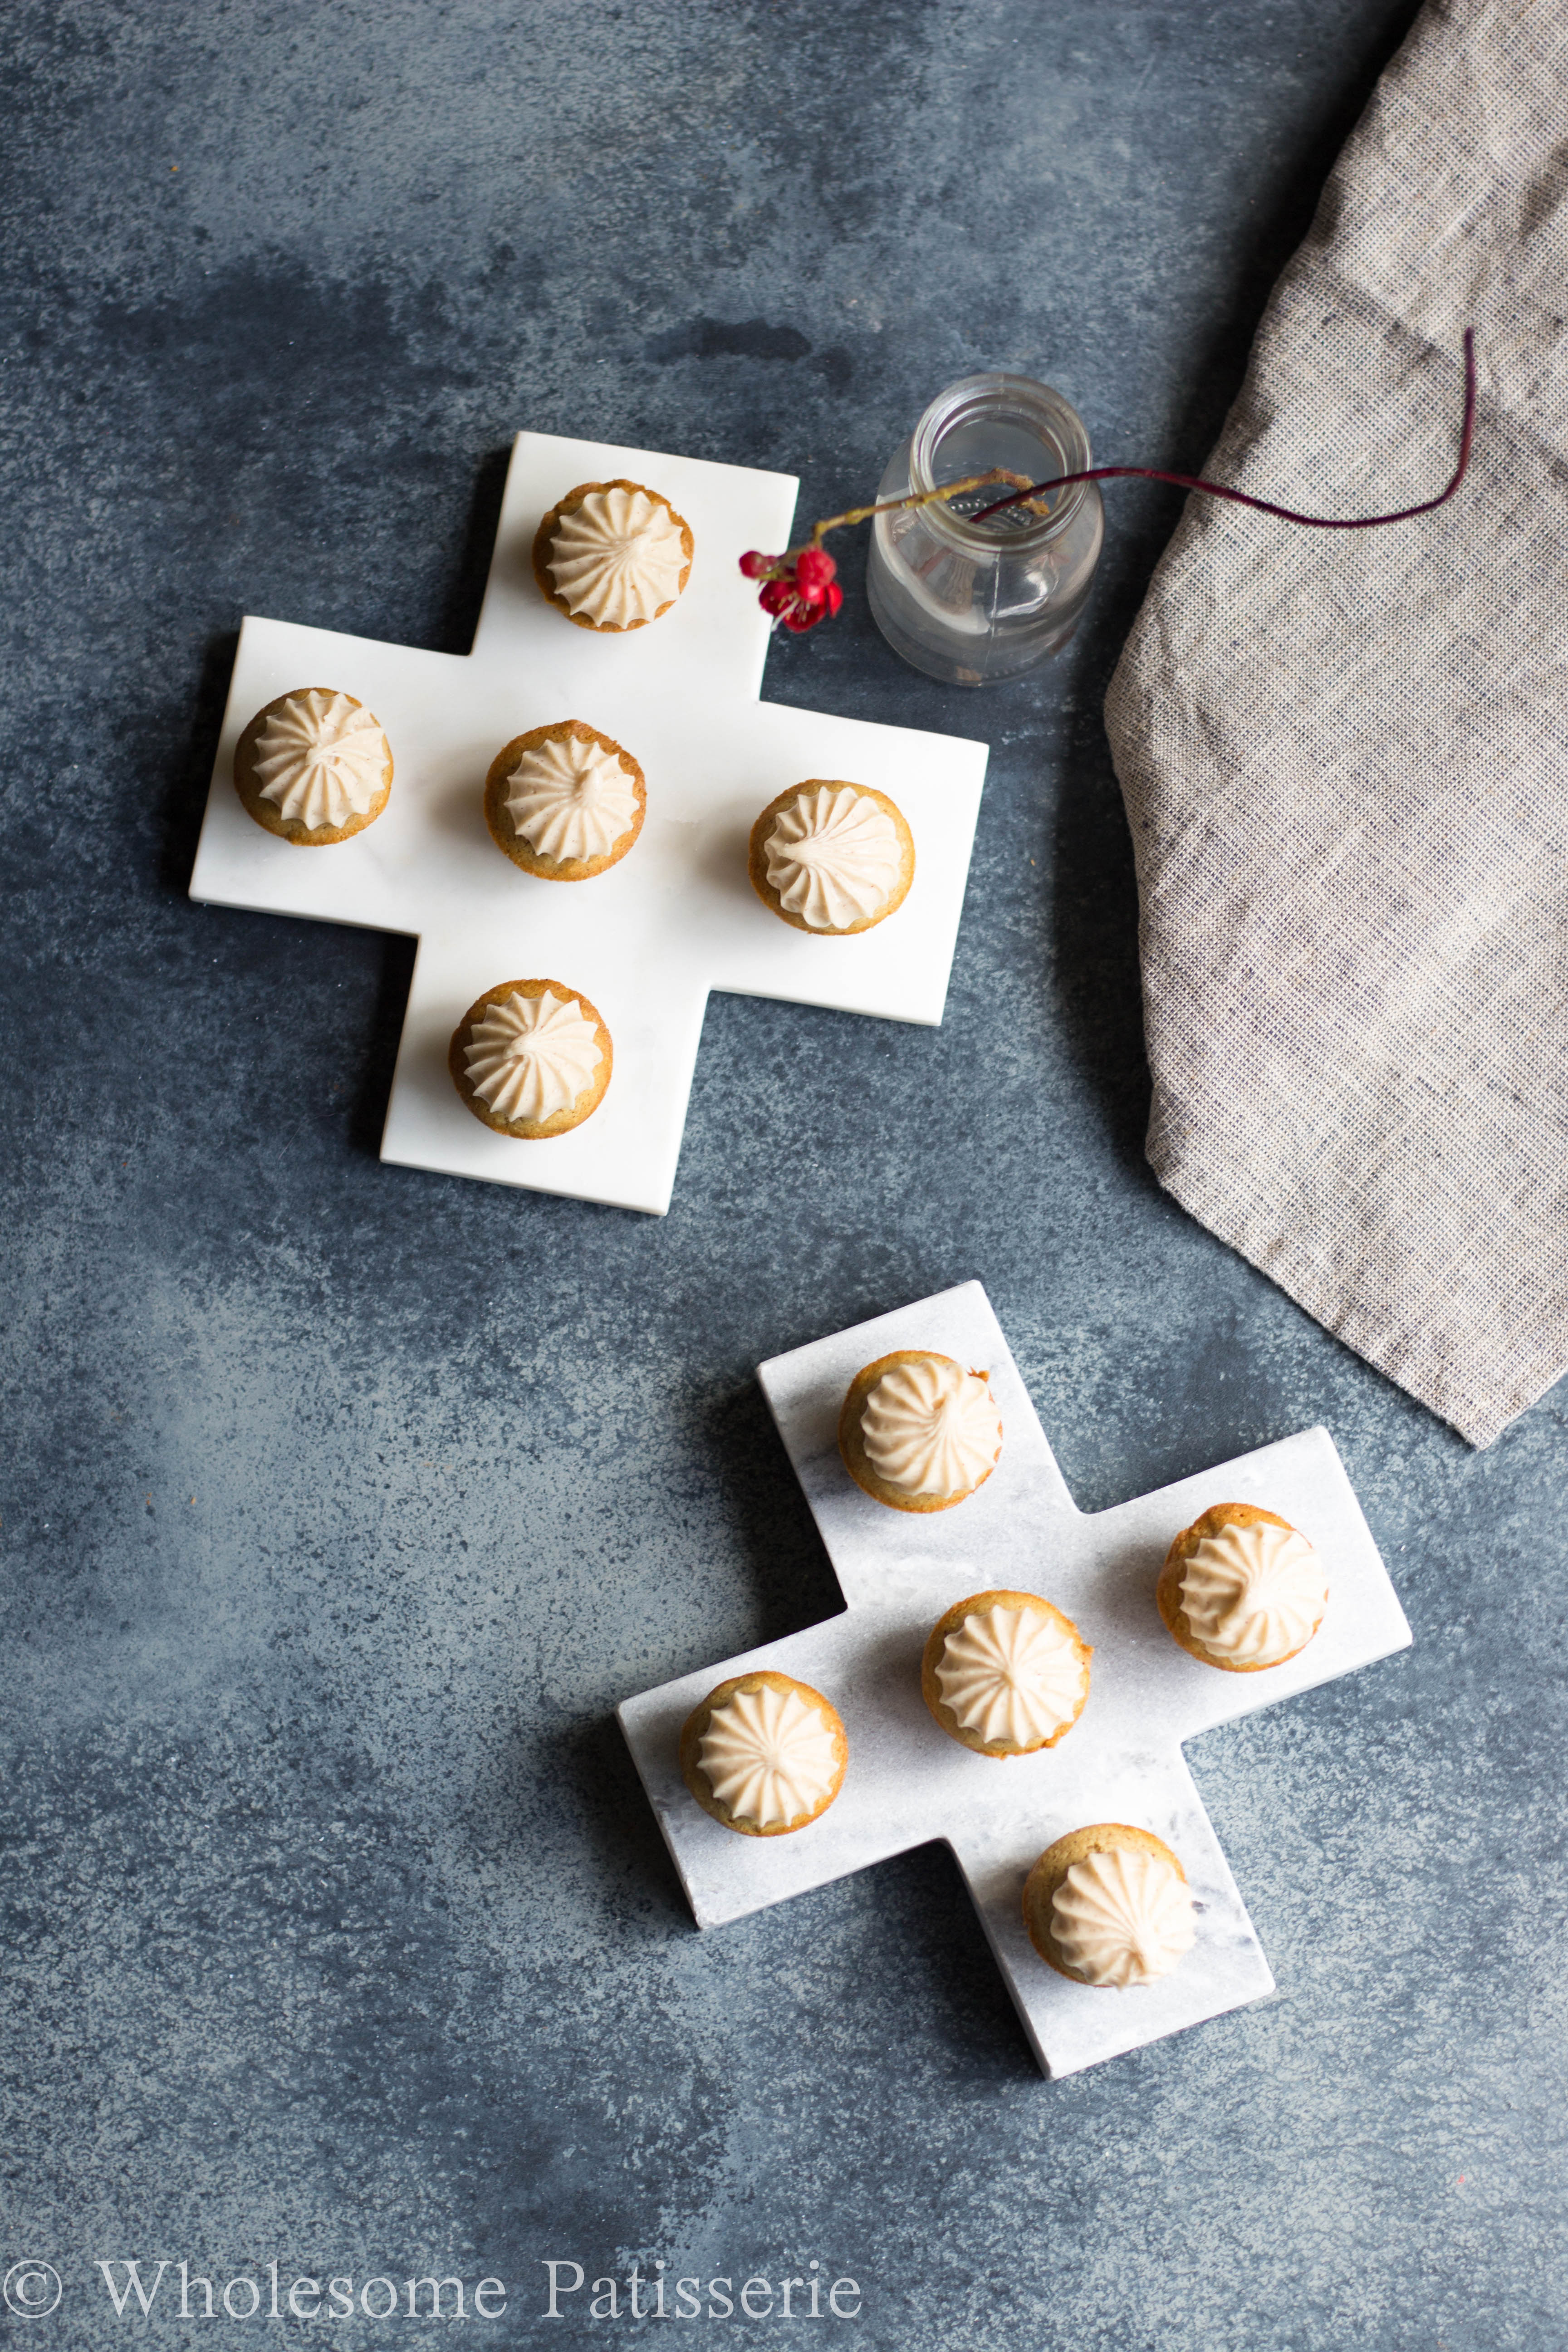 GLUTEN-FREE-cupcake-recipe-honey-cupcakes-vegetarian-DELICIOUS-easy-yummy-cupcakes-cinnamon-mini-cupcakes-wholesome-patisserie-healthy